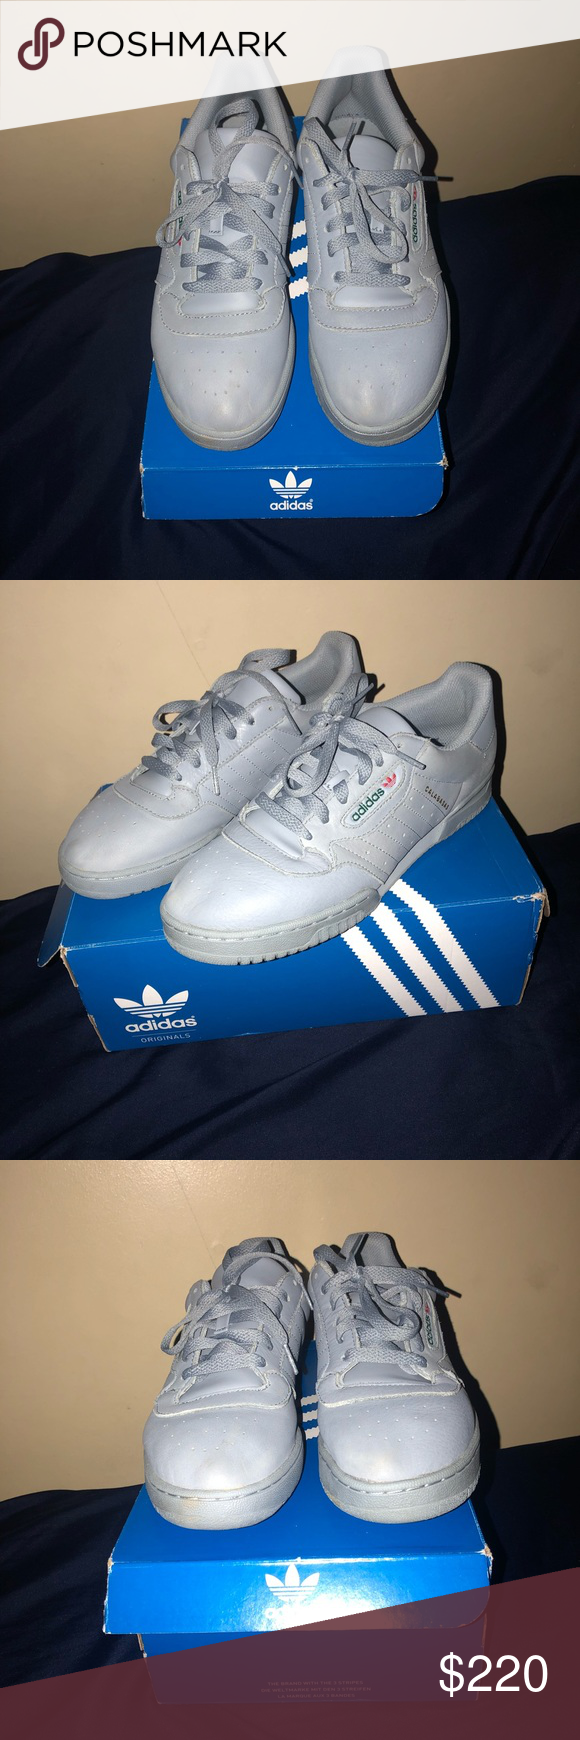 7162911052f Yeezy Powerphase -Colorway  Grey Supcol -Materials  Leather